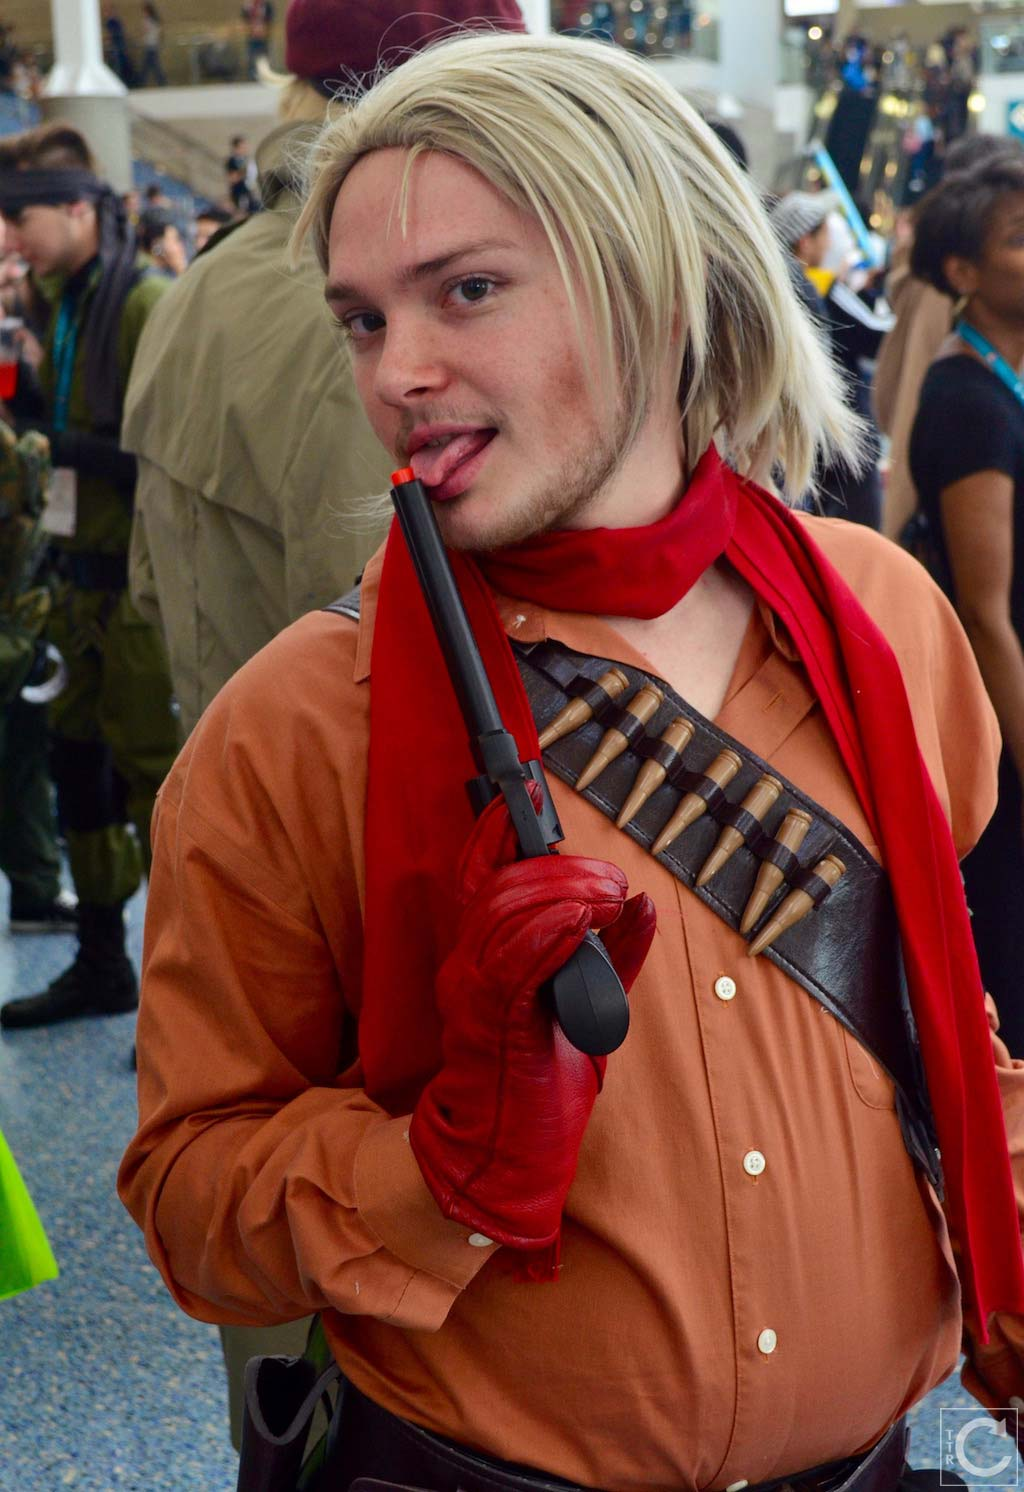 Wondercon 2016 Cosplay Funny Outtakes 47 Revolver Ocelot Turn The